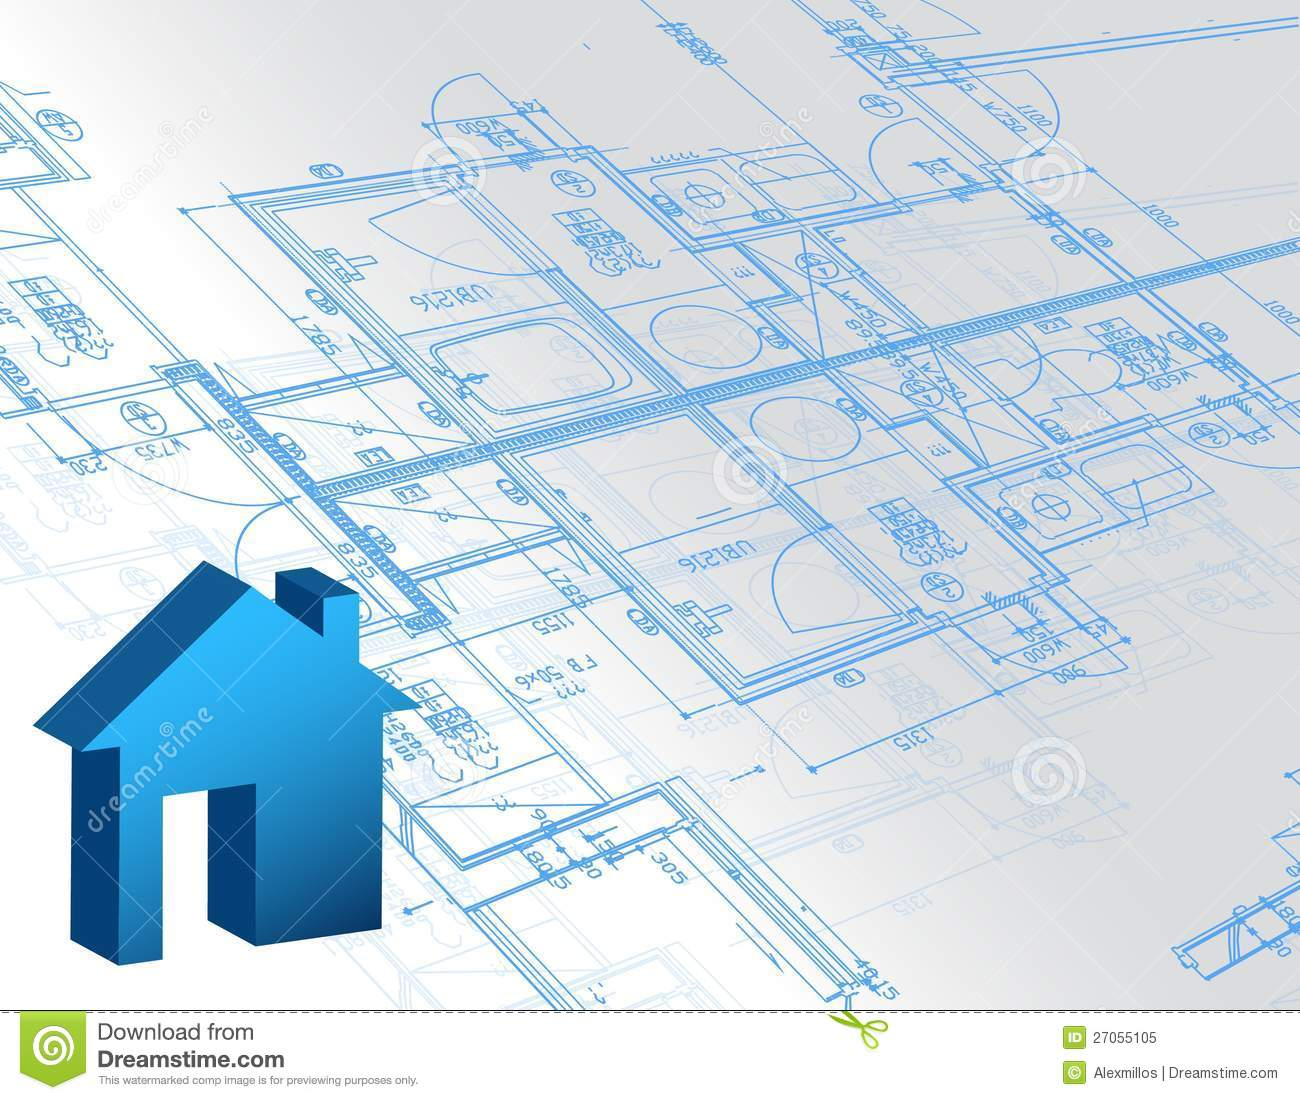 Architectural design blueprint drawing 3d cartoon vector for House map drawing